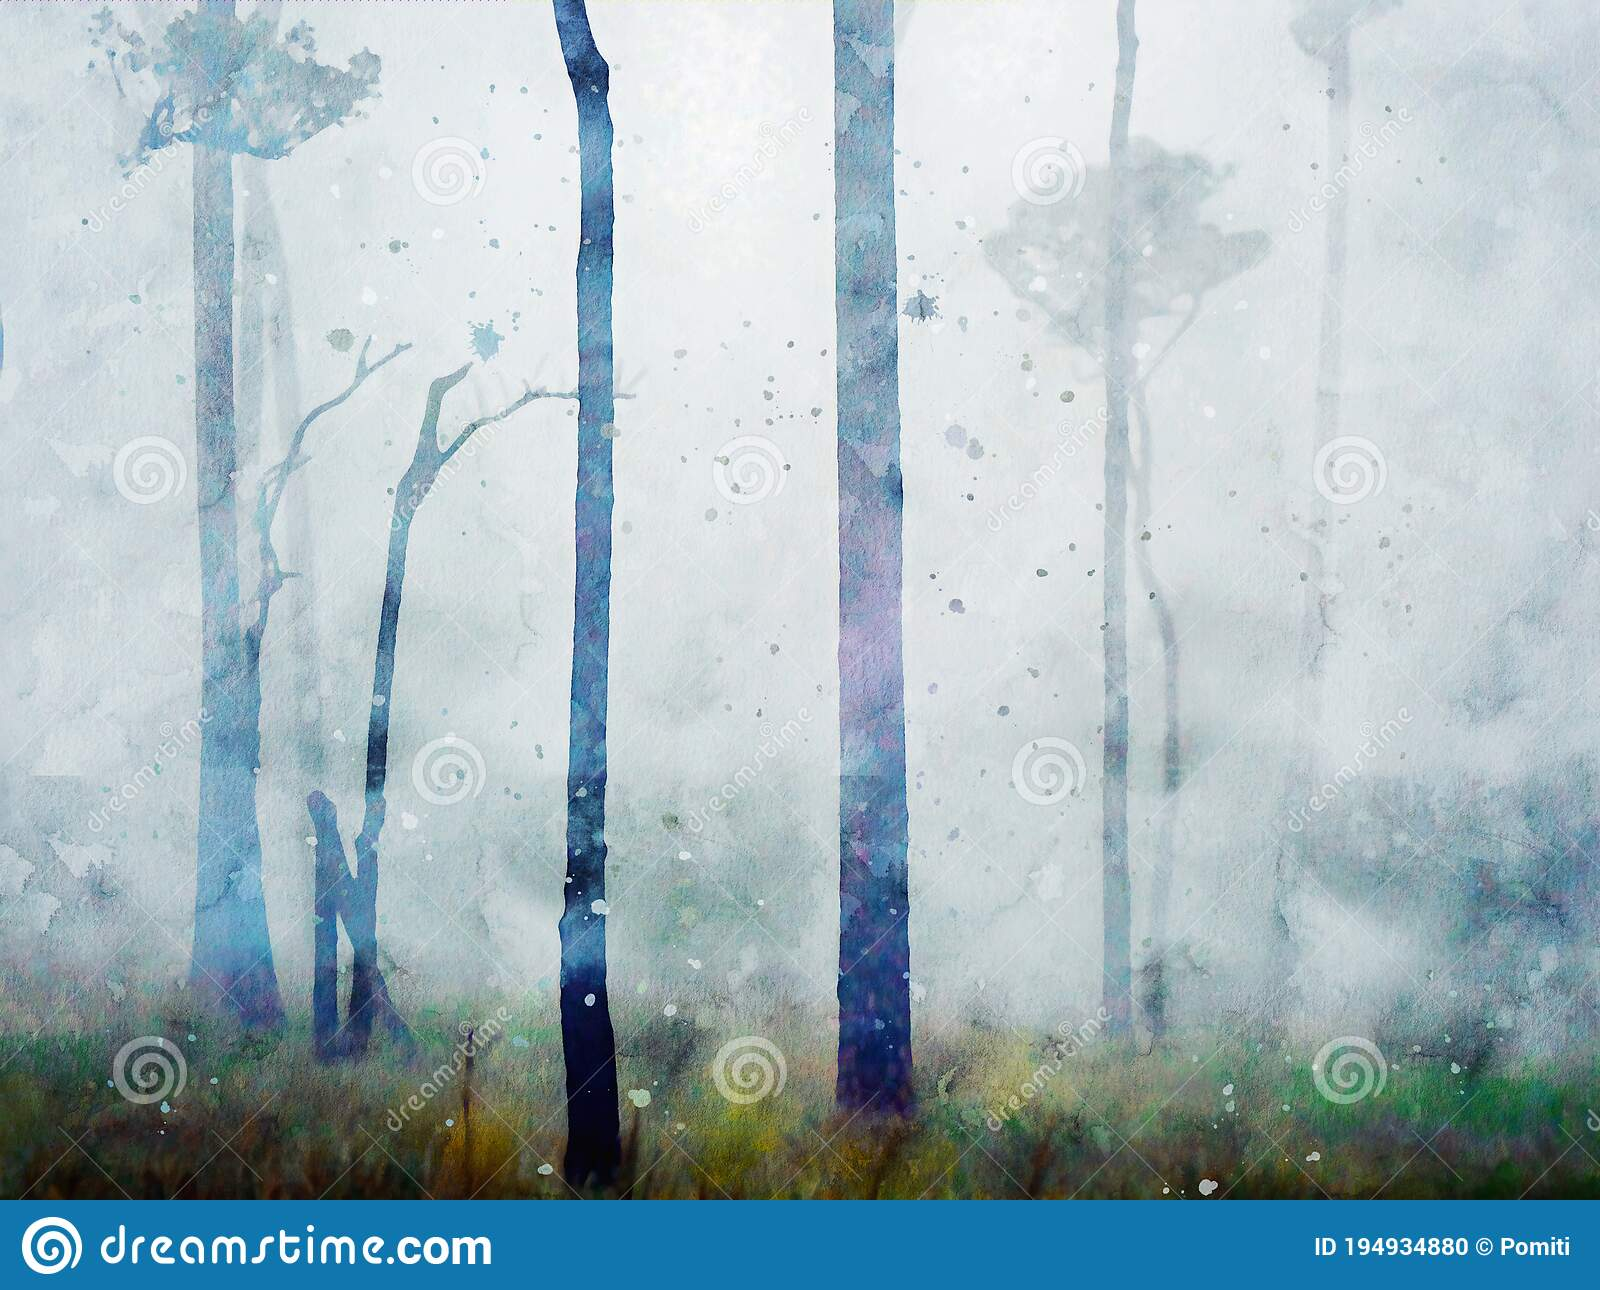 Watercolor Painting Of Pine Trees In Forest Nature Landscape Image Digital Watercolor Illustration Art For Wall Stock Photo Image Of Watercolor Trees 194934880